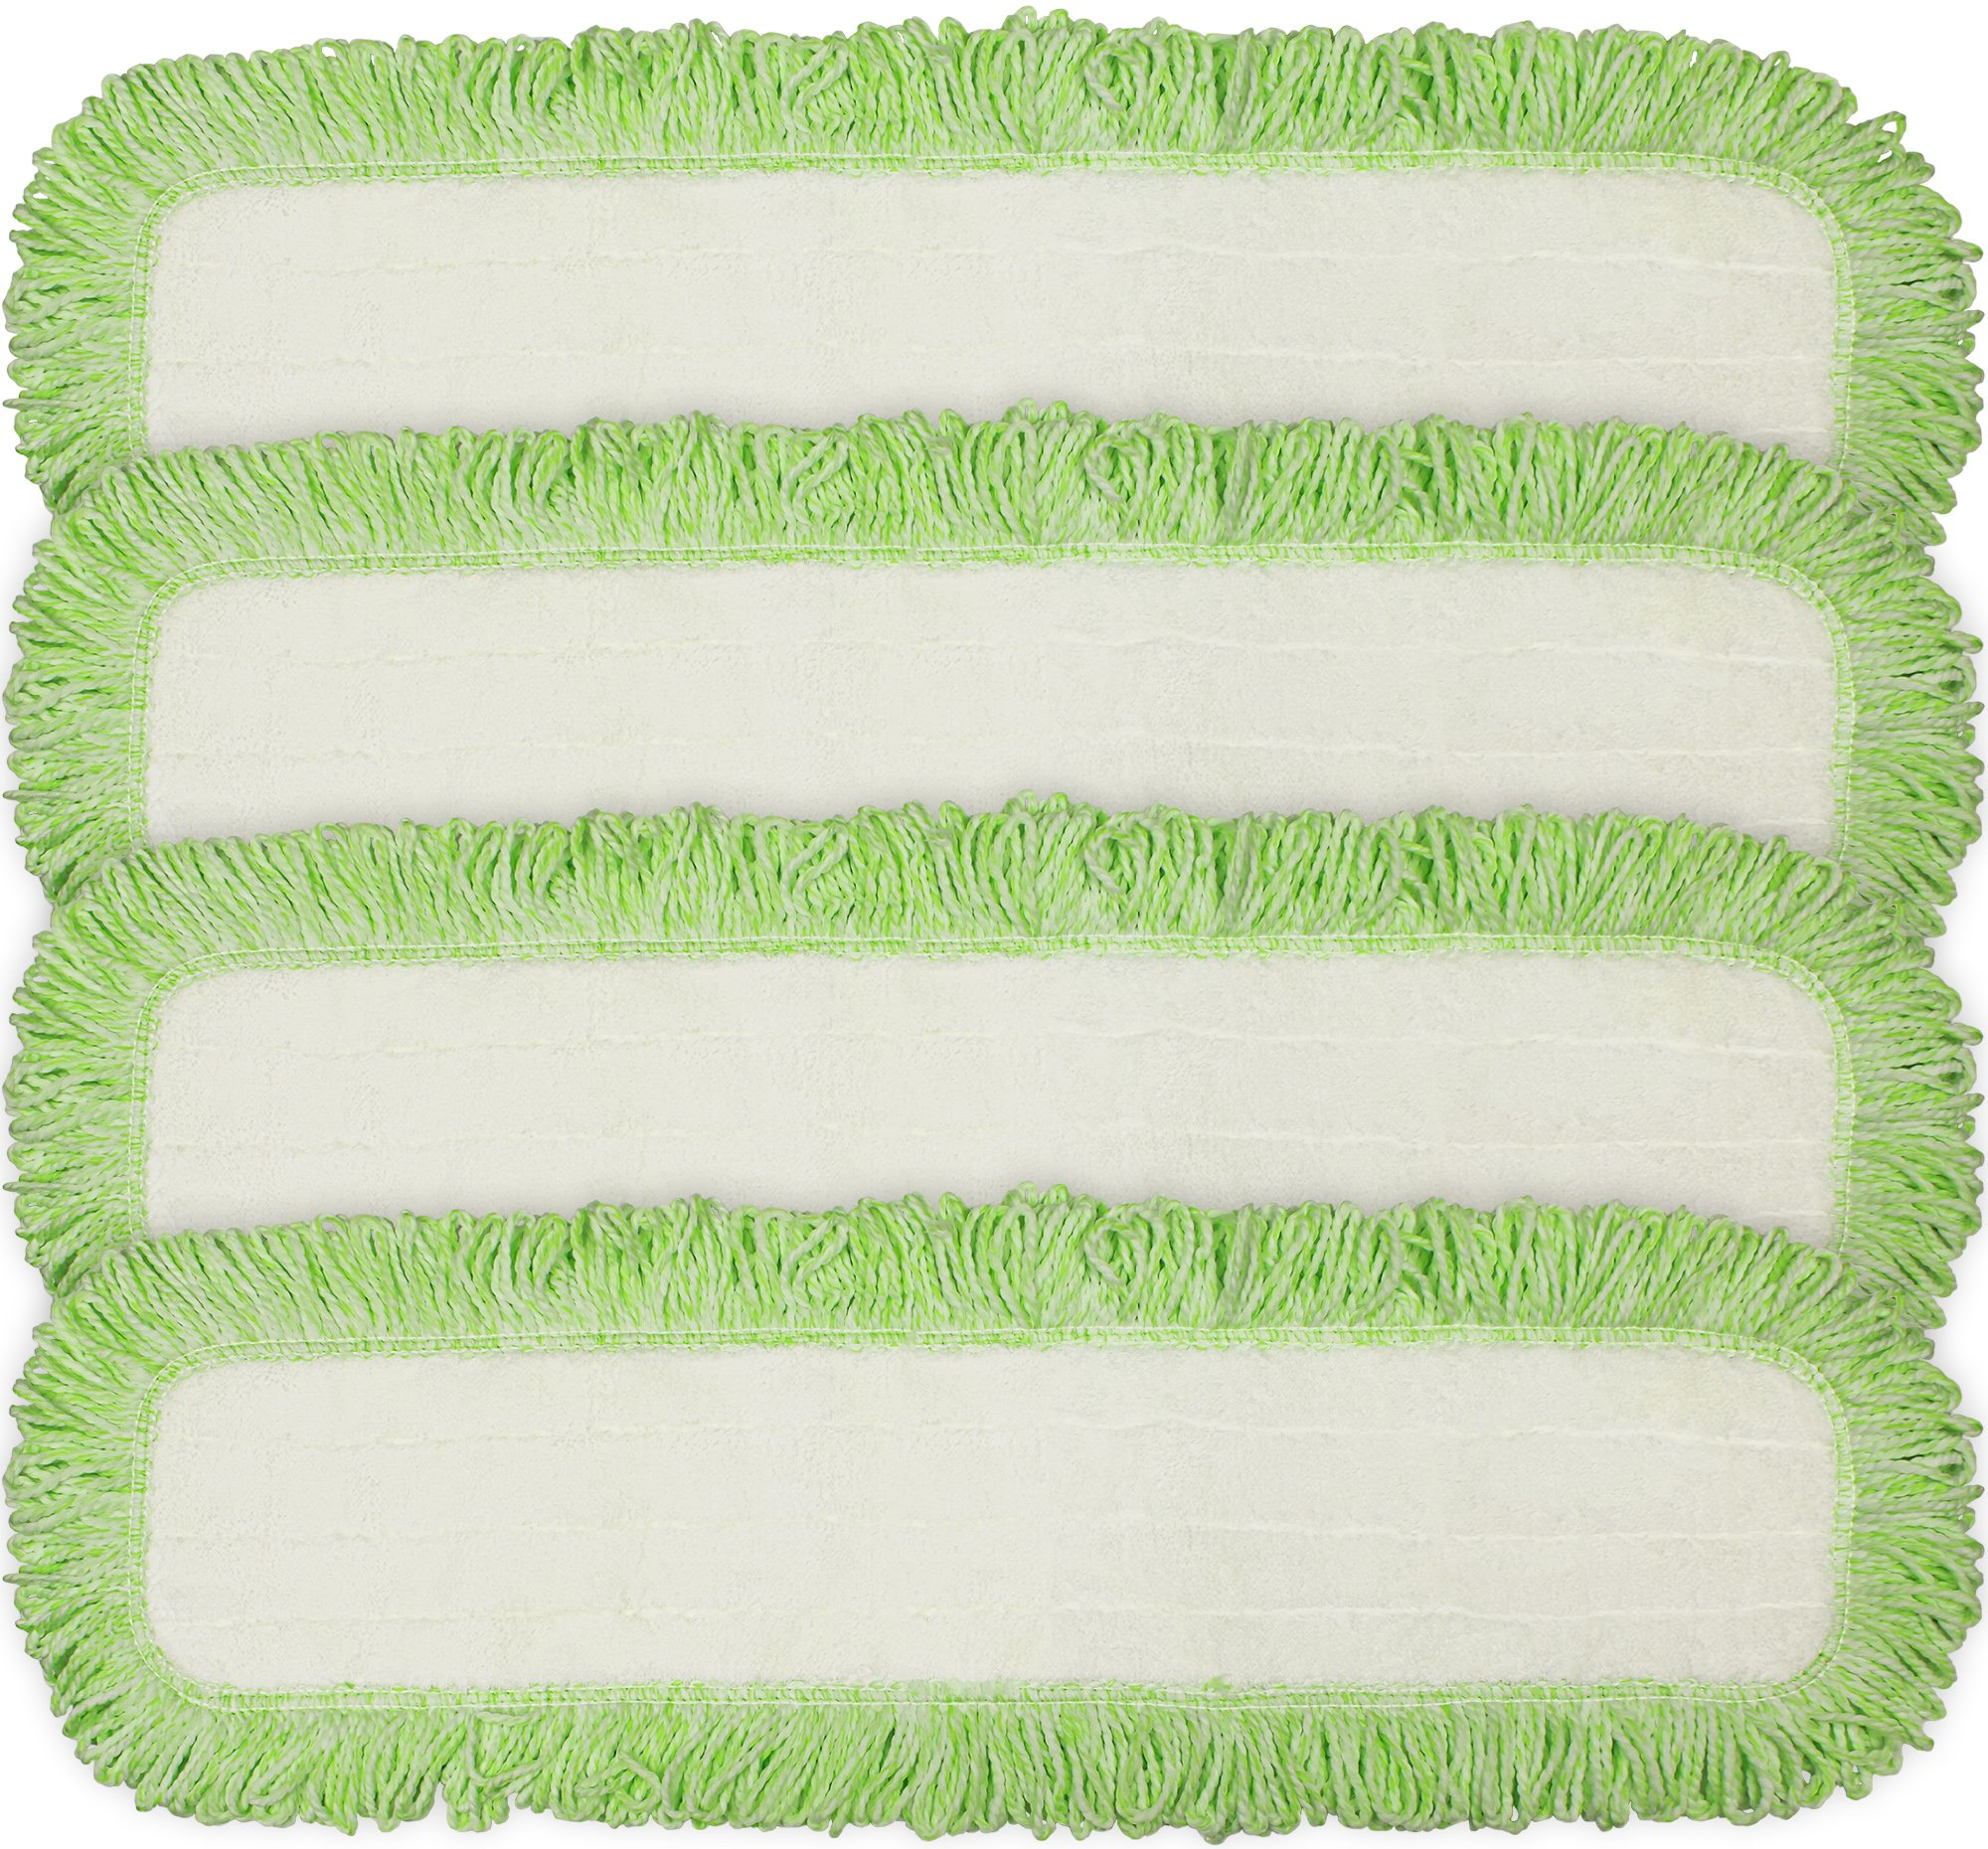 Eurow Commercial Microfiber Dry Mop Pad Refill 24 in Green 4 Pack by CleanAide